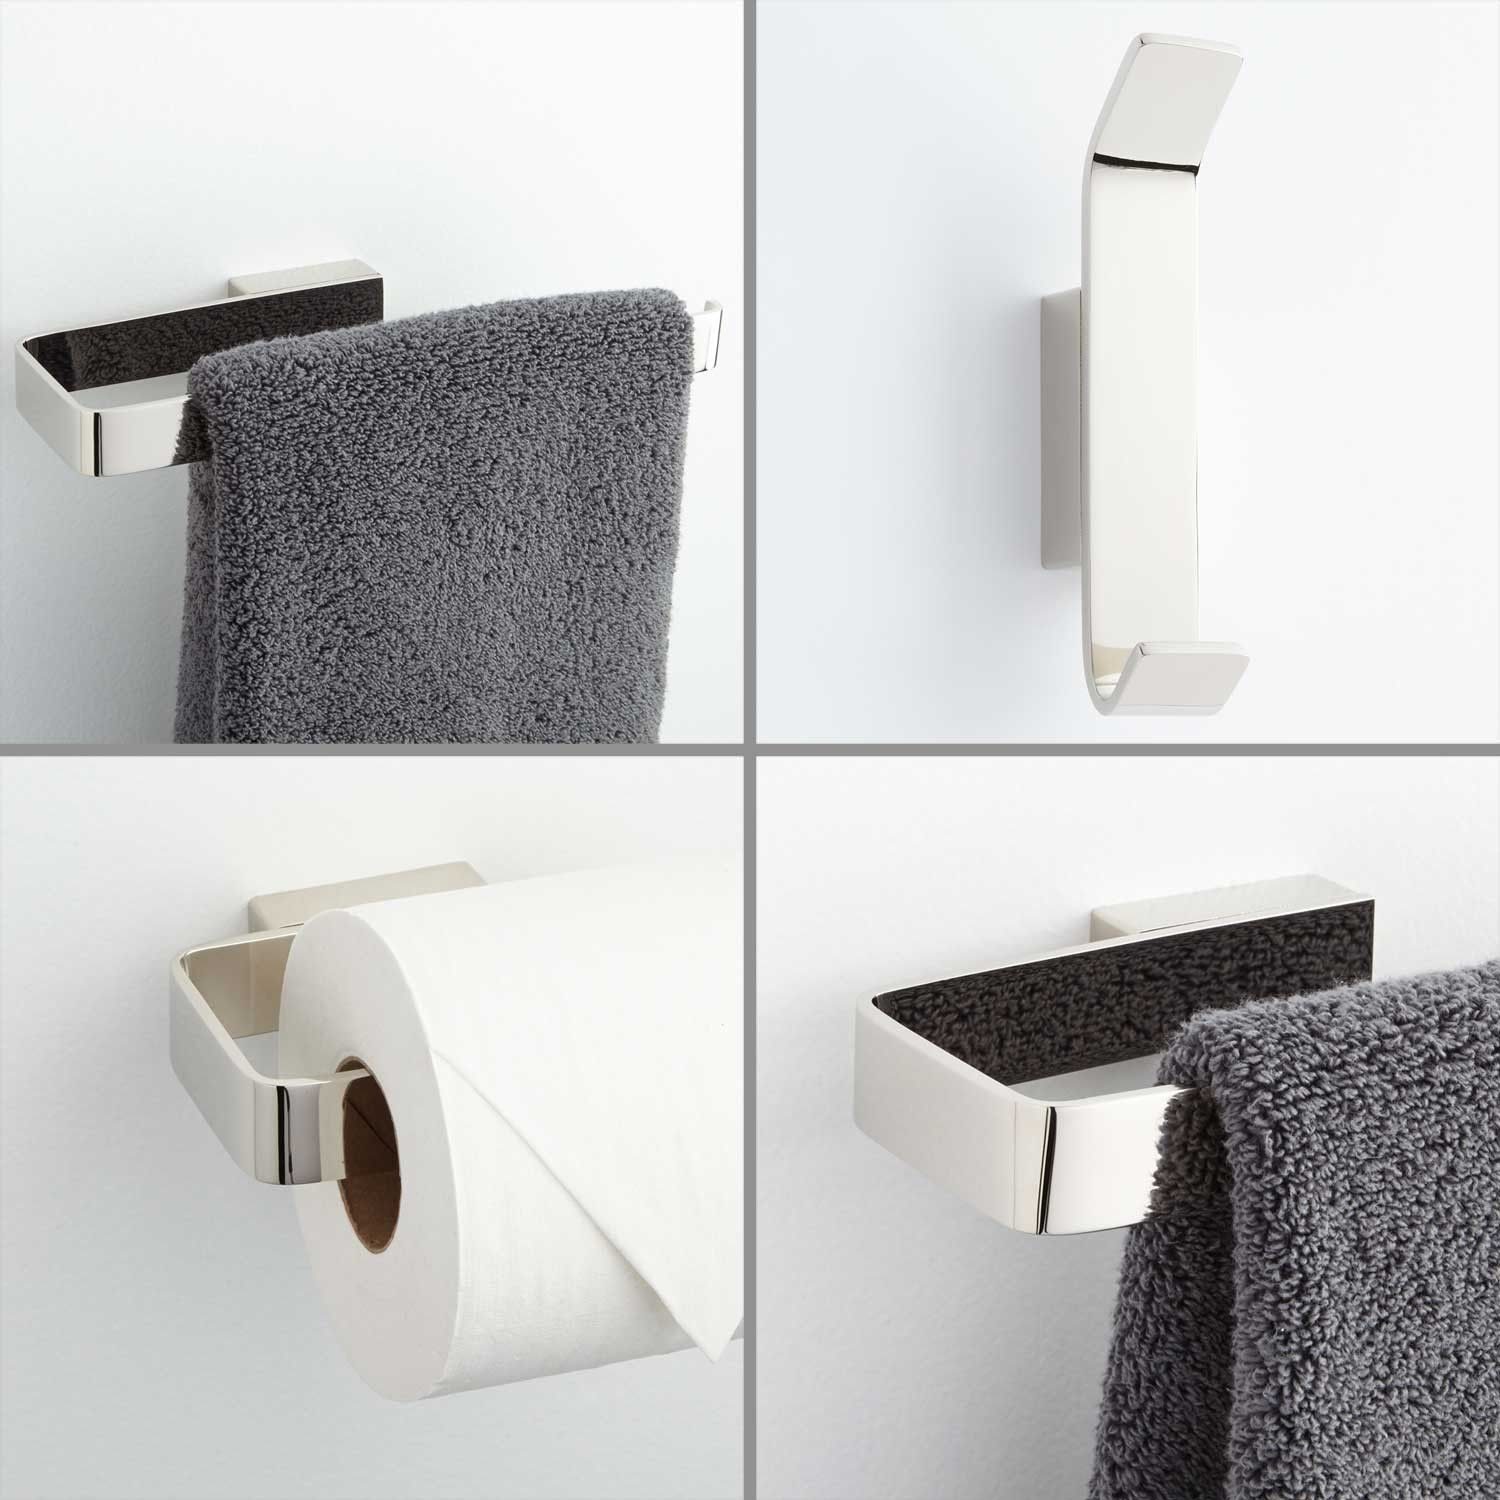 Newberry 4-Piece Bathroom Accessory Set | Let The Remodeling Begin ...